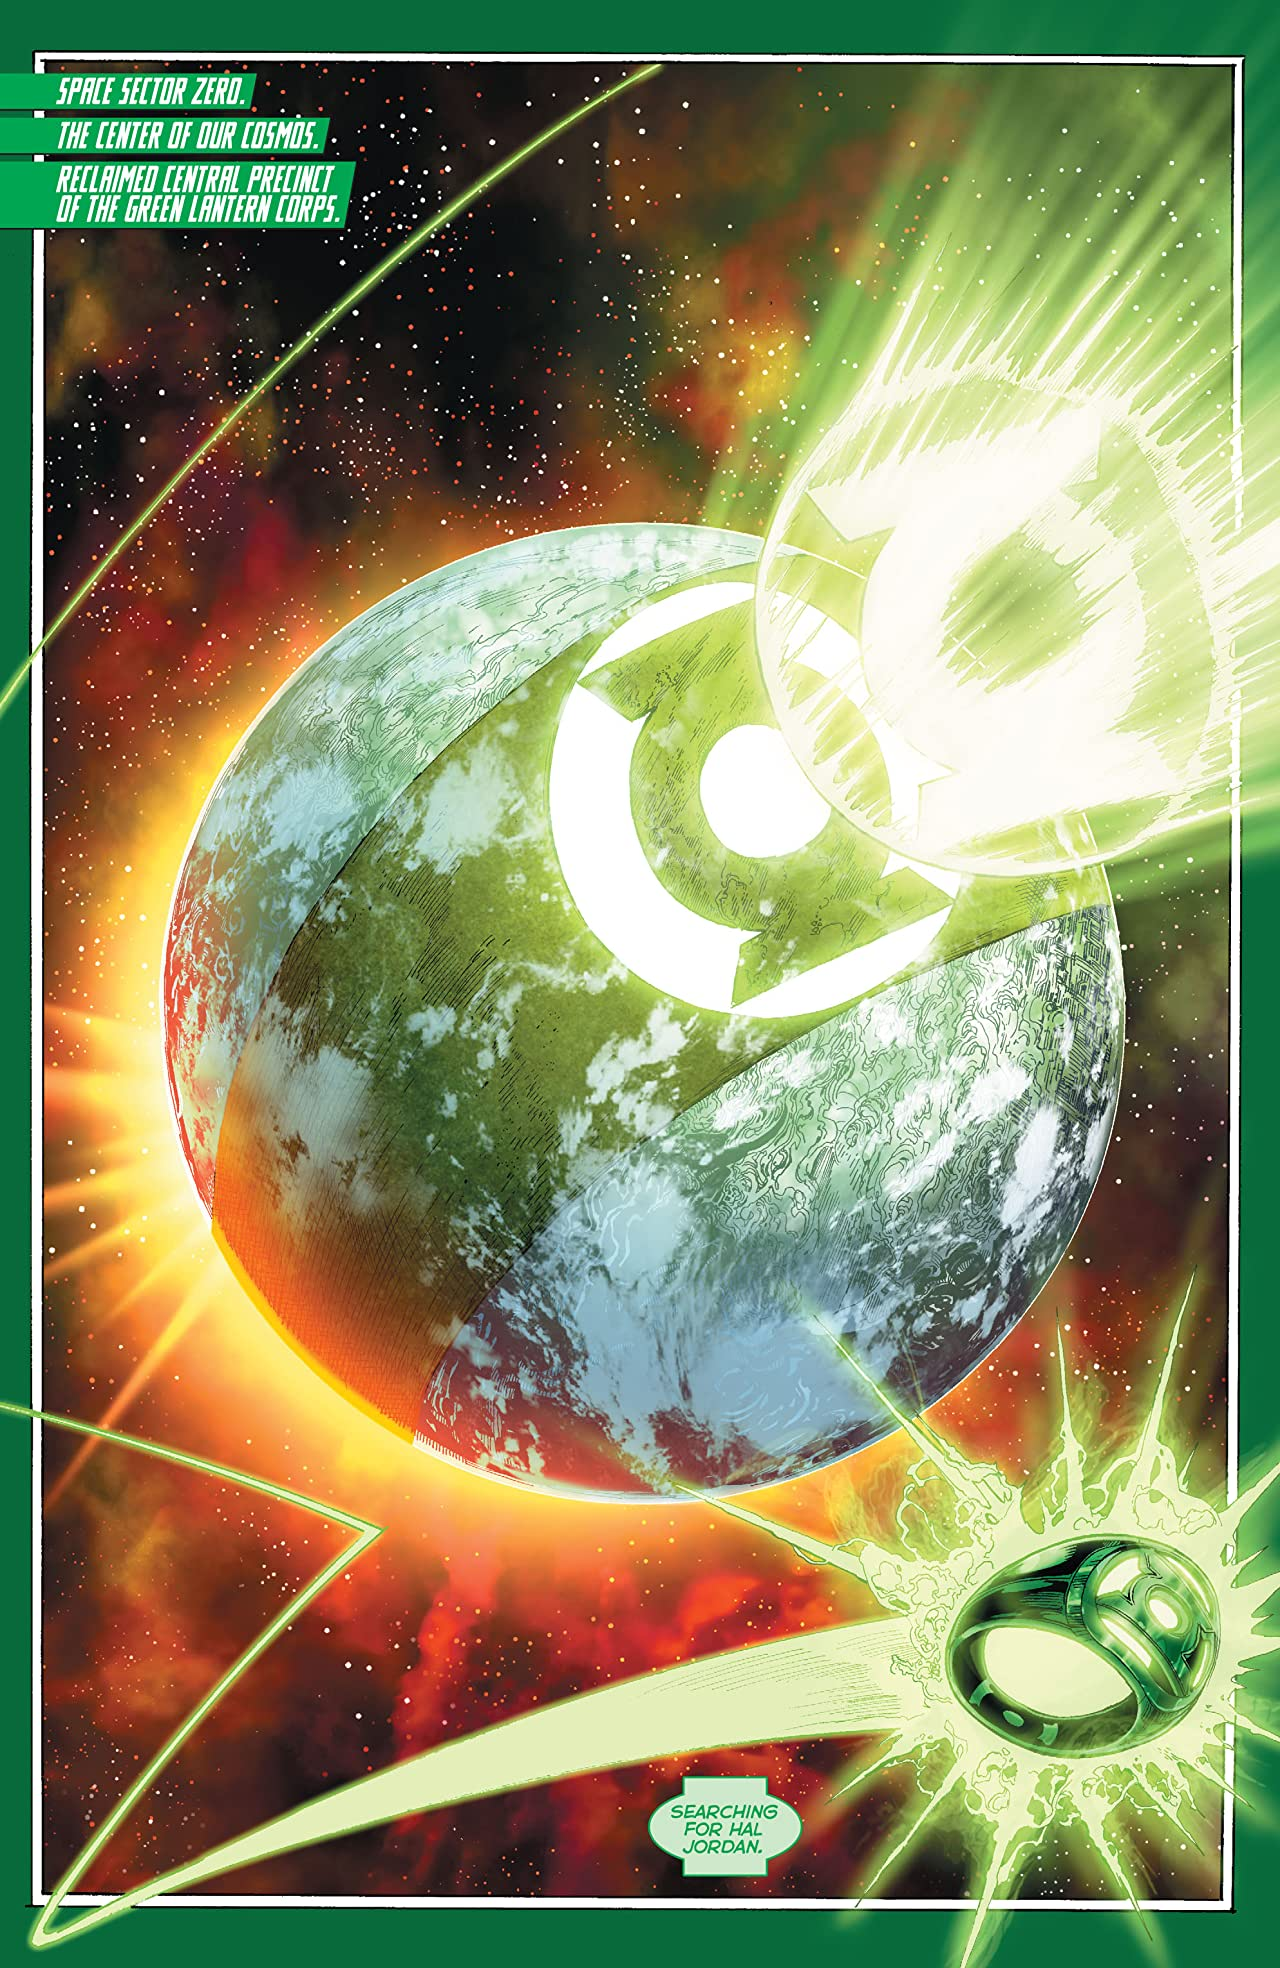 Hal Jordan and the Green Lantern Corps (2016-2018) Vol. 2: Bottled Light